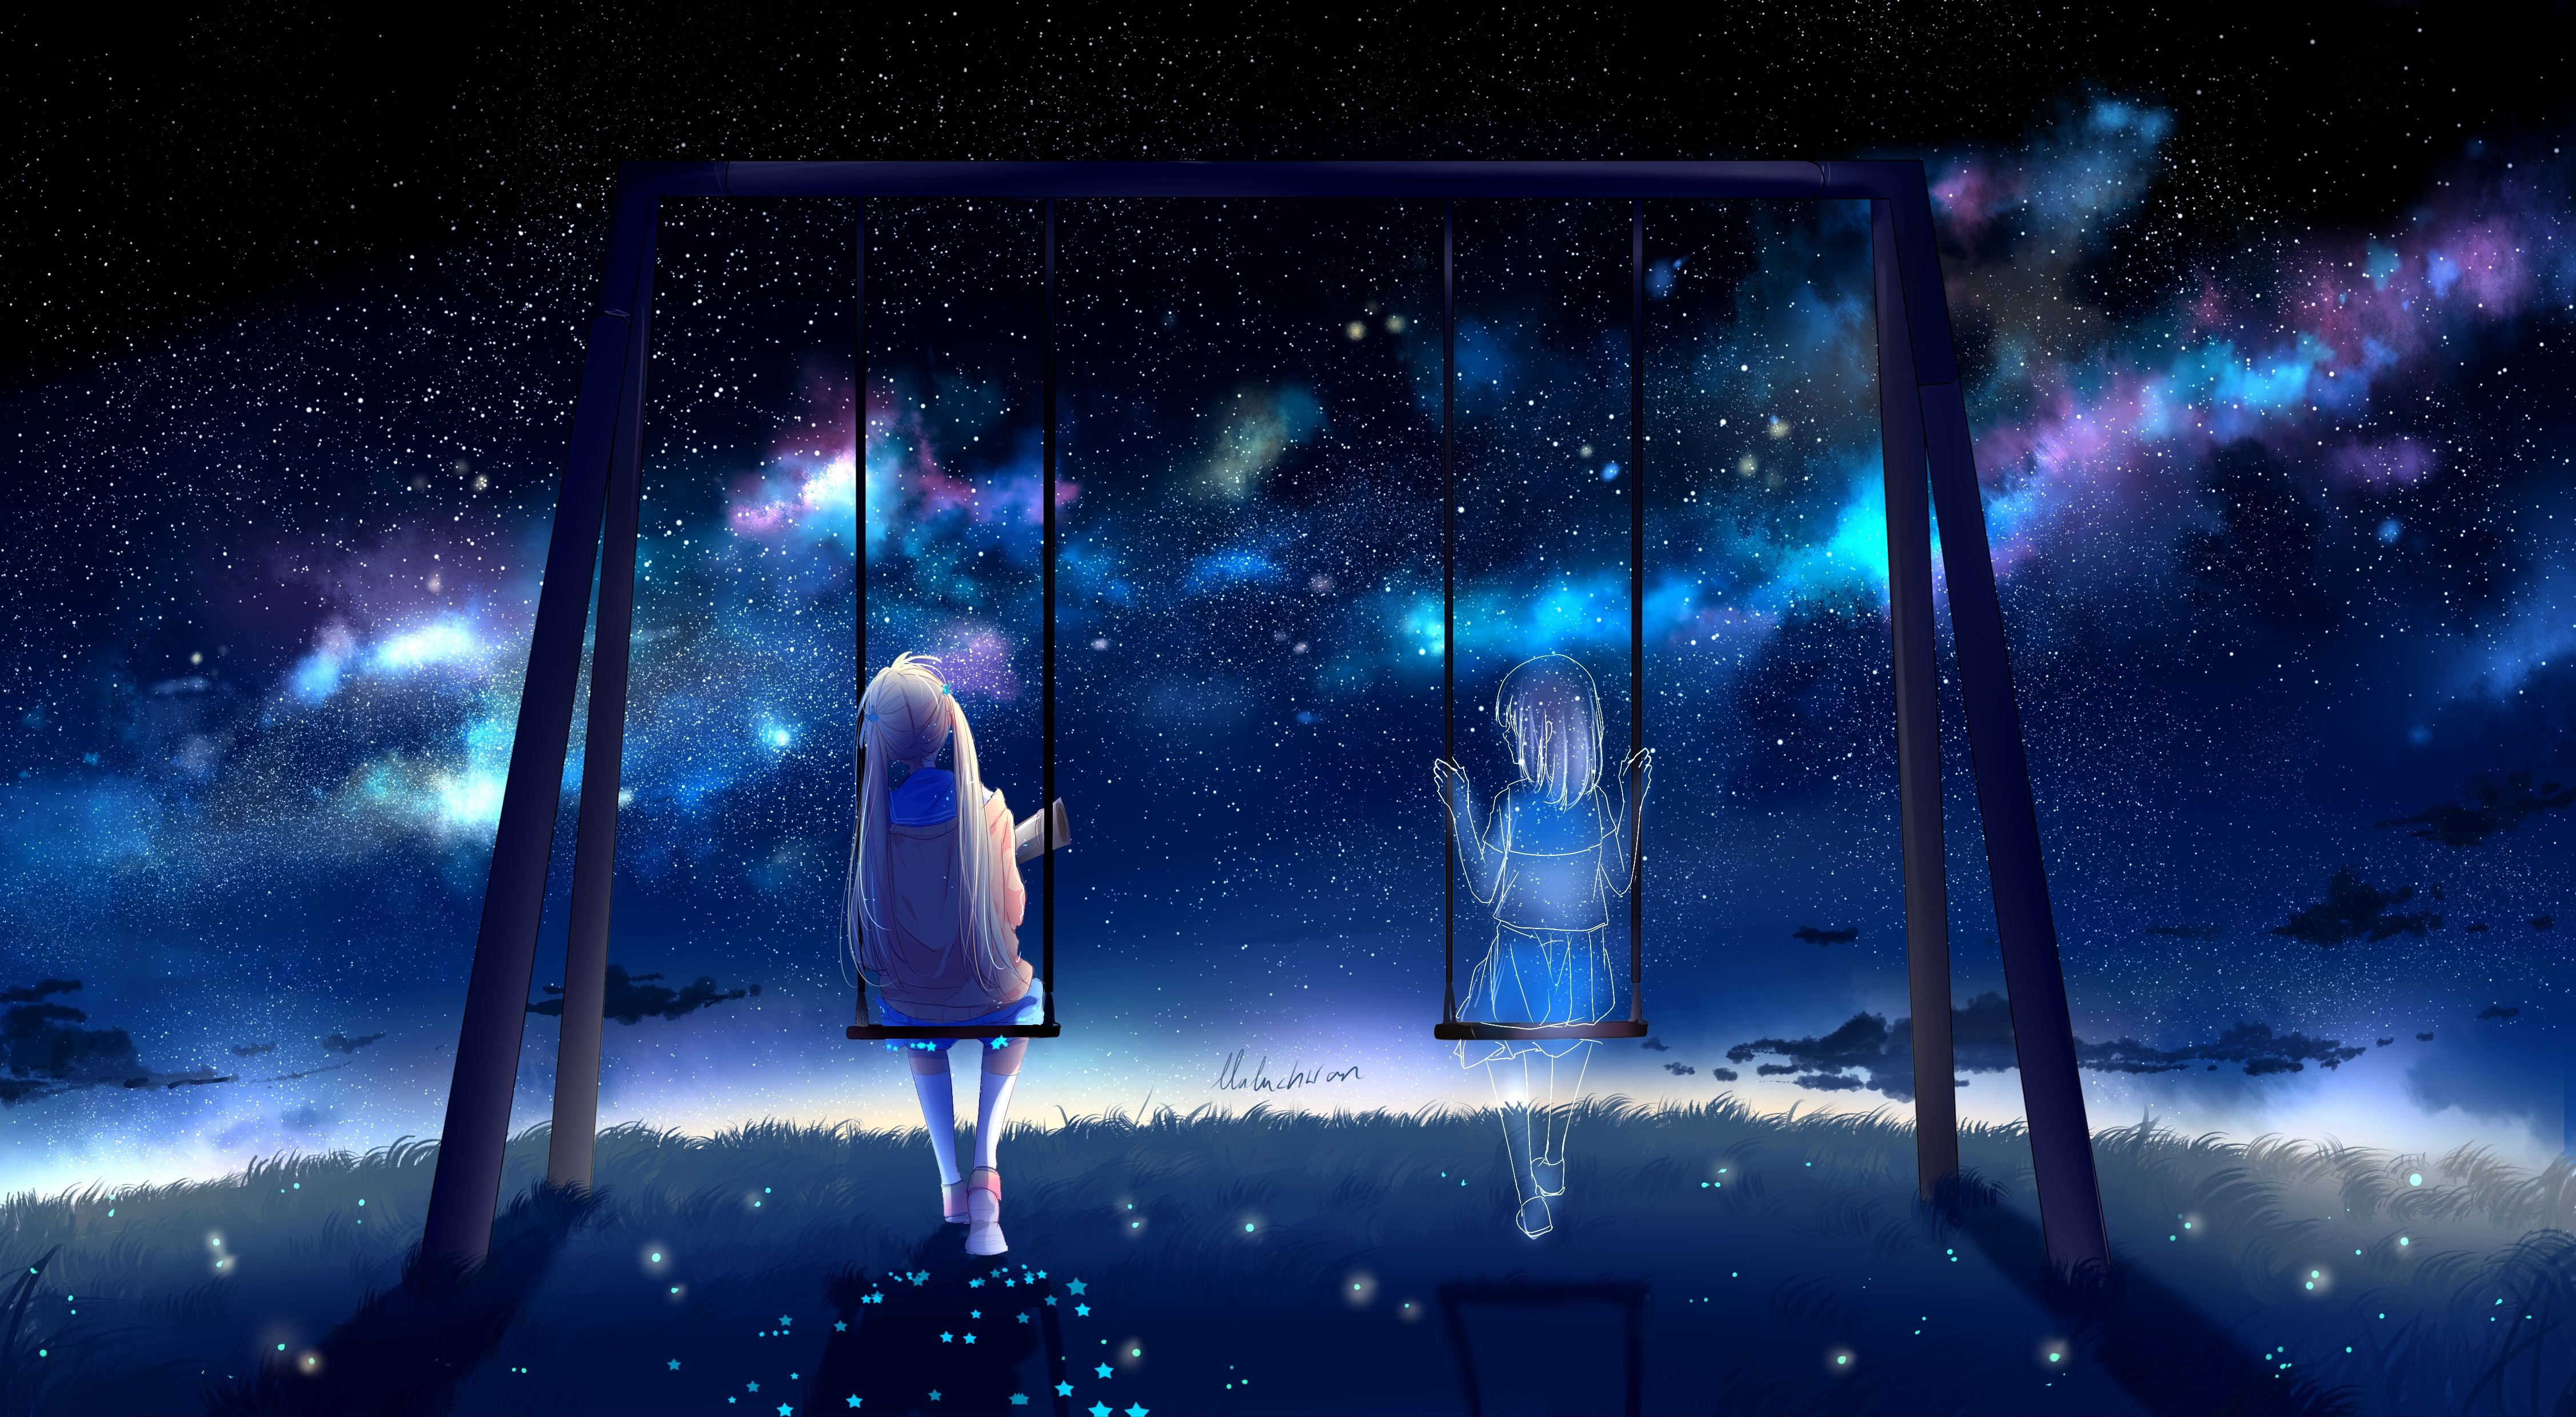 Alone Cartoon Girl lonely anime girl wallpapers - top free lonely anime girl